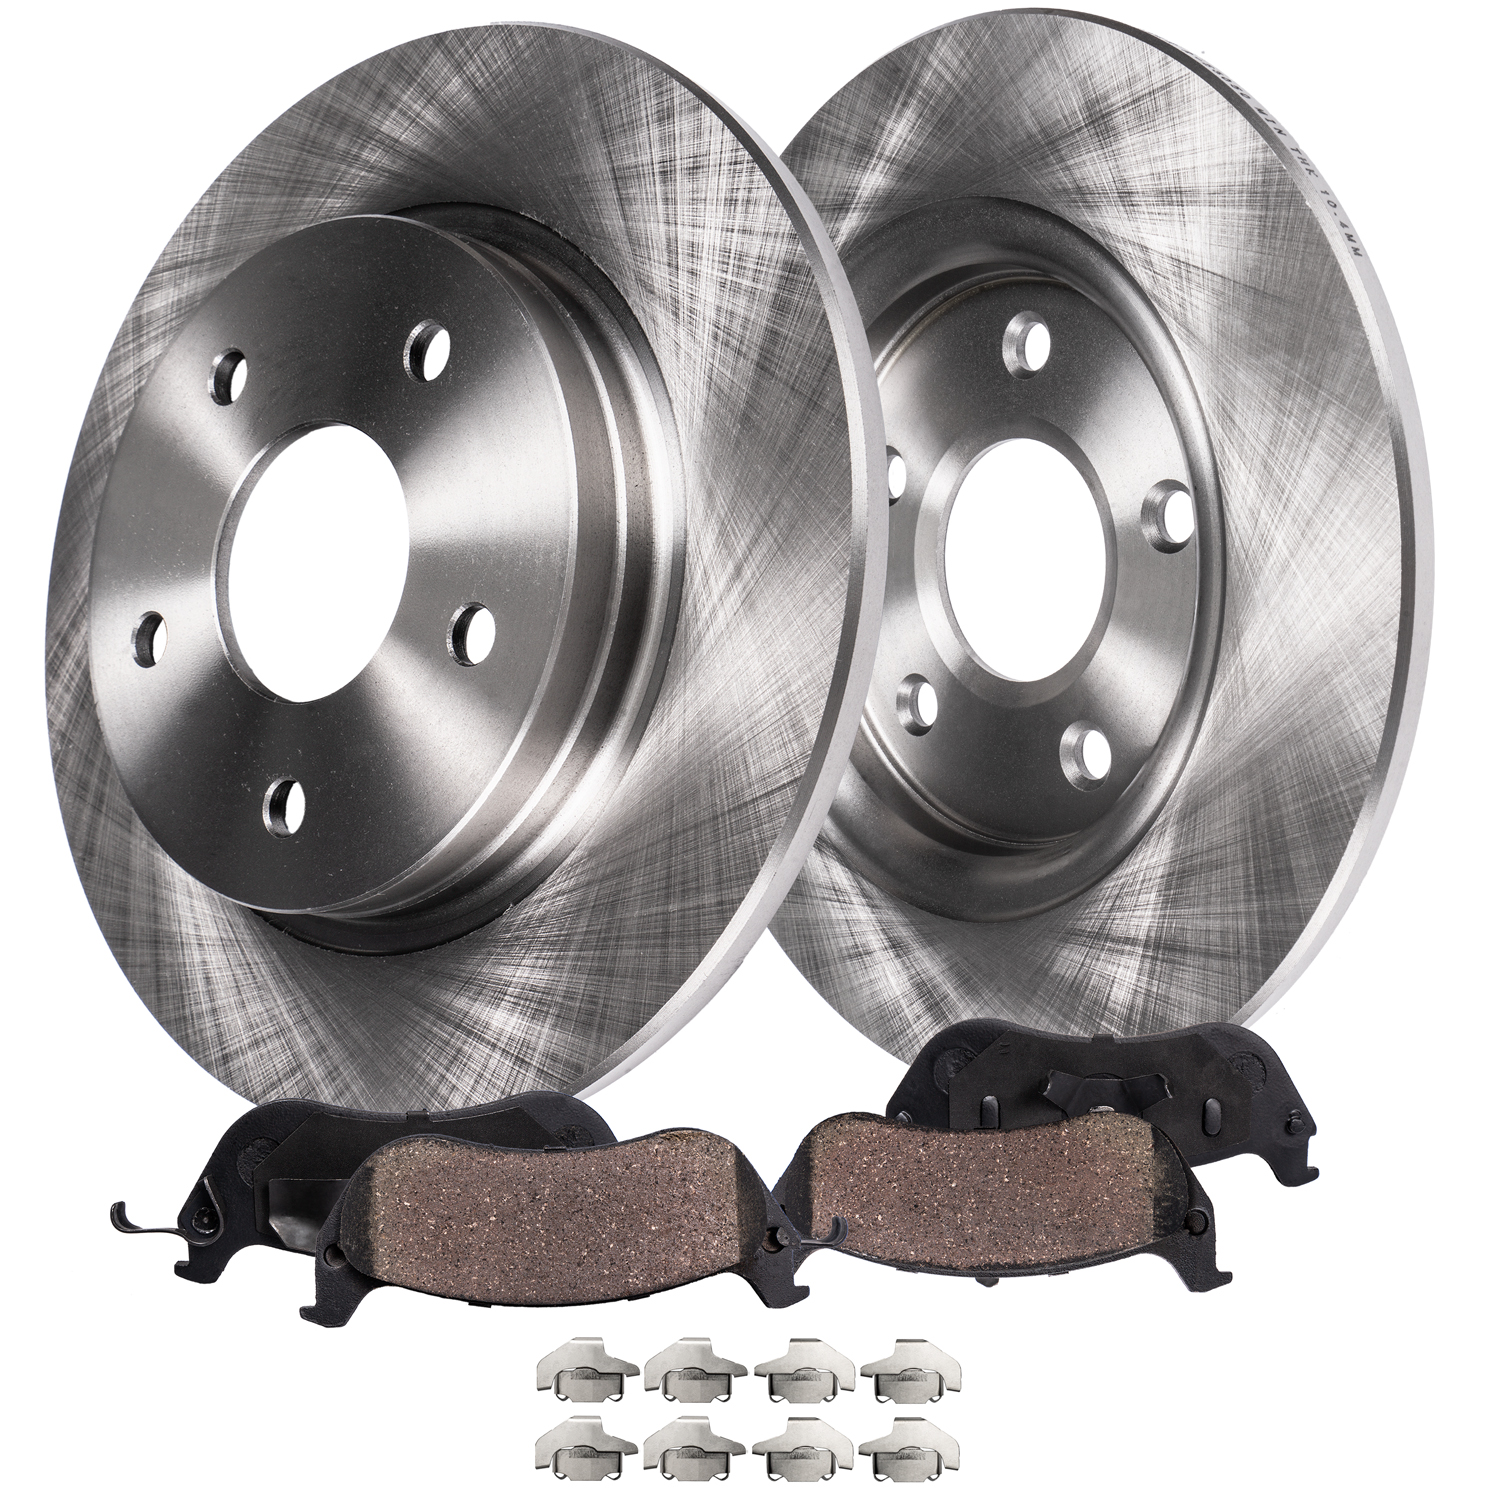 REAR Brake Rotors and Ceramic Brake Pad Kit WITH REAR DISC ONLY